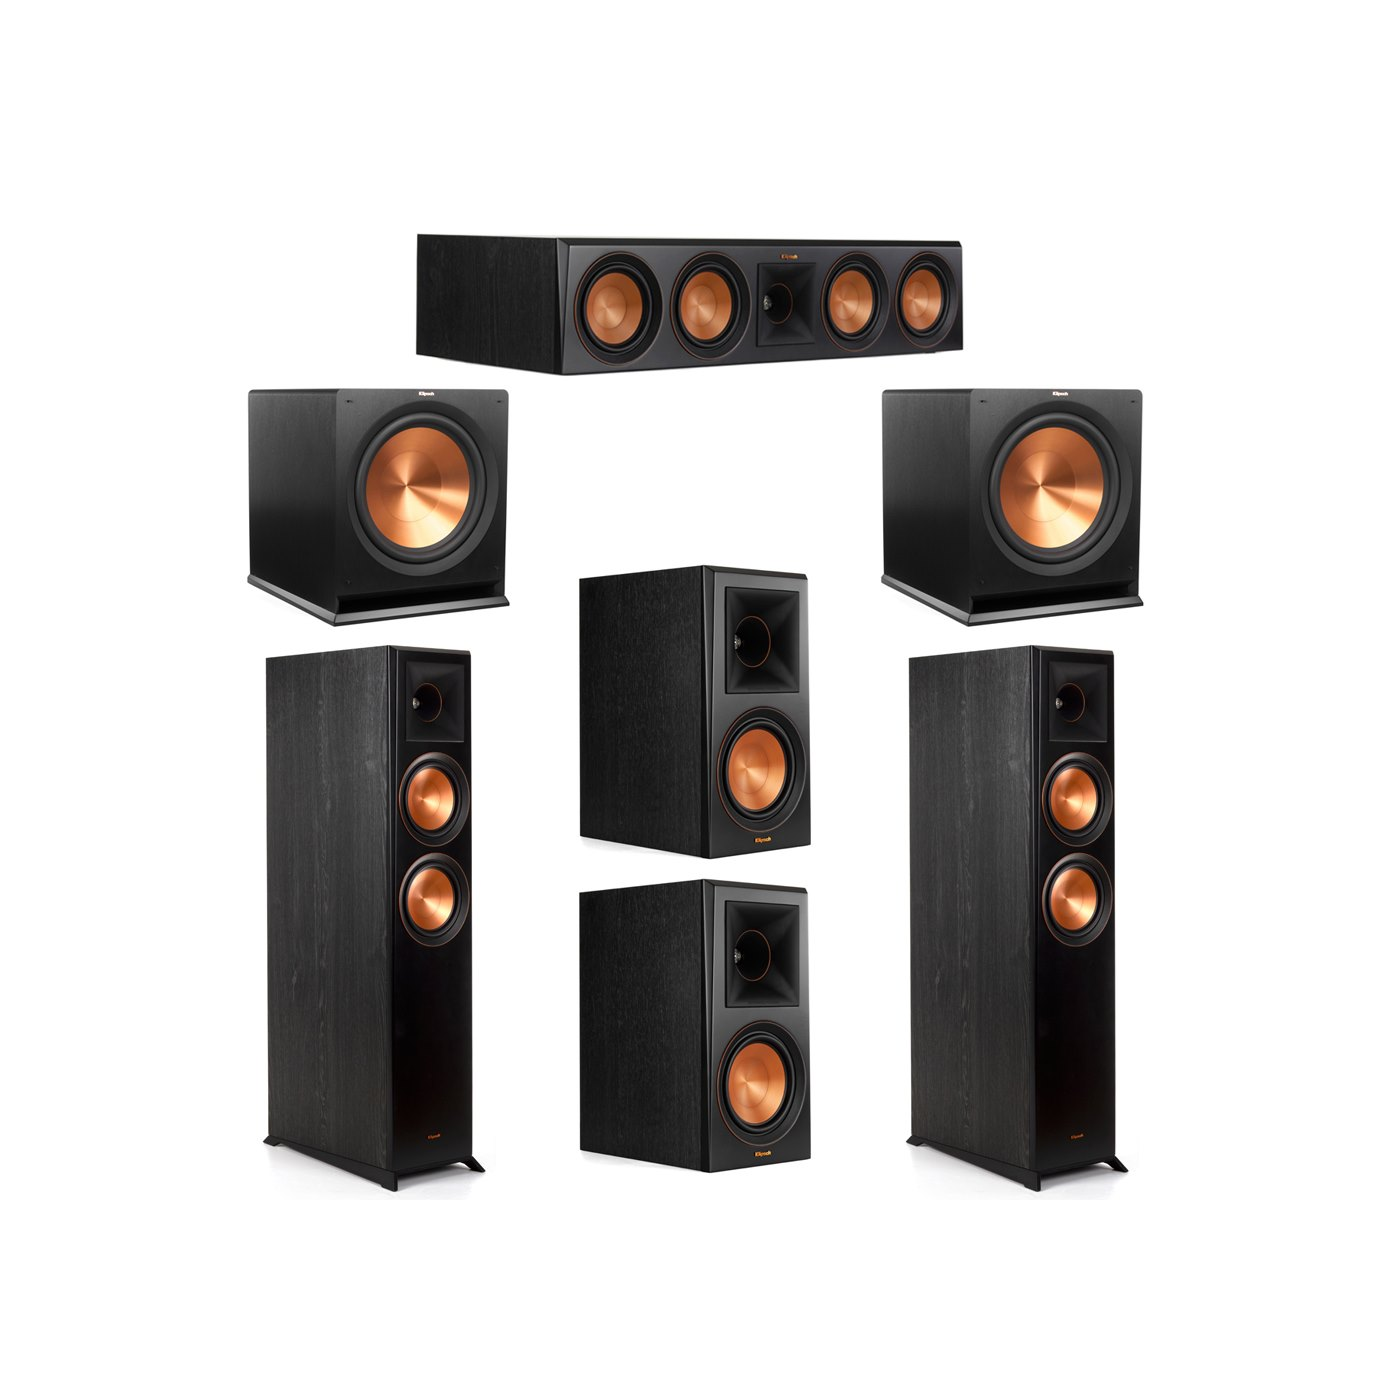 Klipsch 5.2 System with 2 RP-6000F Floorstanding Speakers, 1 Klipsch RP-504C Center Speaker, 2 Klipsch RP-600M Surround Speakers, 2 Klipsch R-115SW Subwoofers